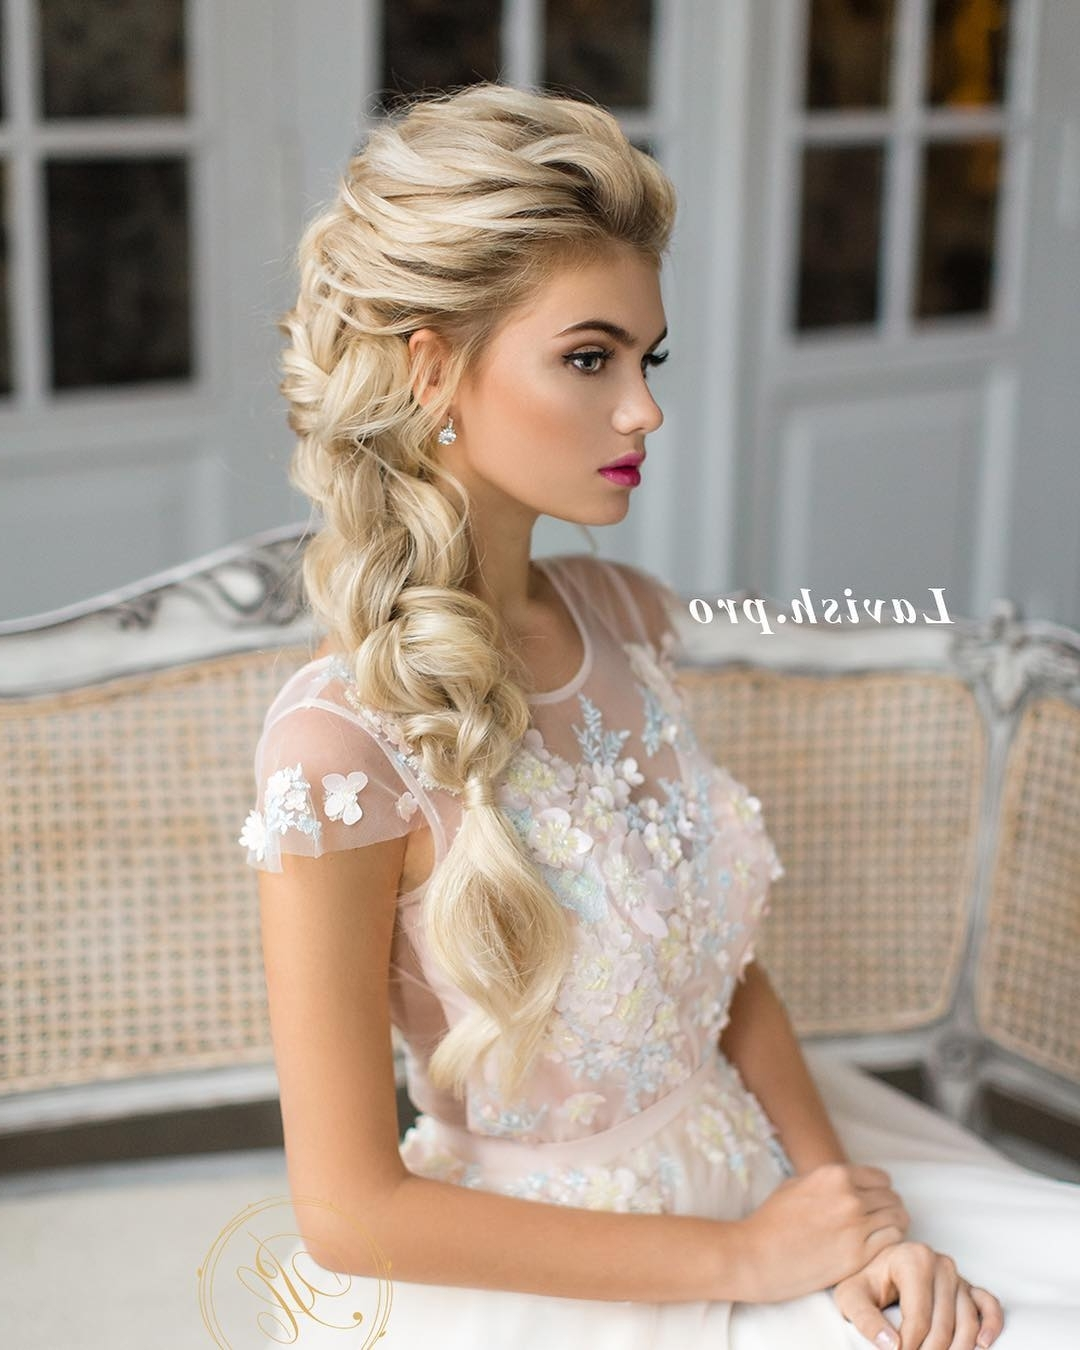 Best And Newest Wedding Hairstyles For Long Blonde Hair Throughout 10 Lavish Wedding Hairstyles For Long Hair – Wedding Hairstyle Ideas (View 3 of 15)